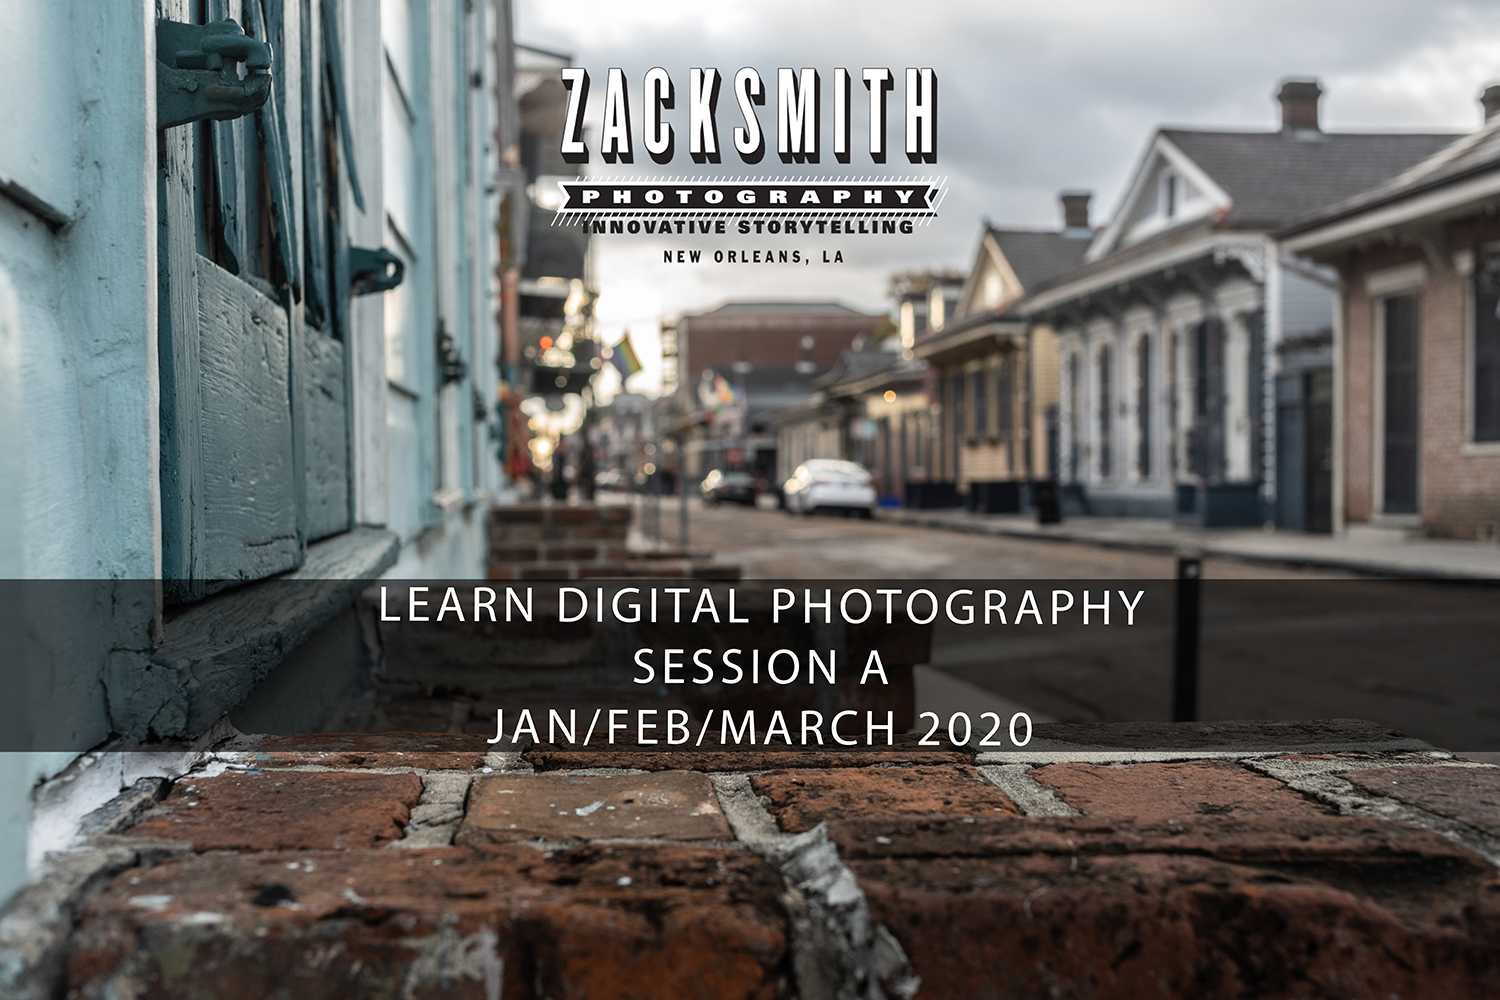 Learn Digital Photography New Orleans